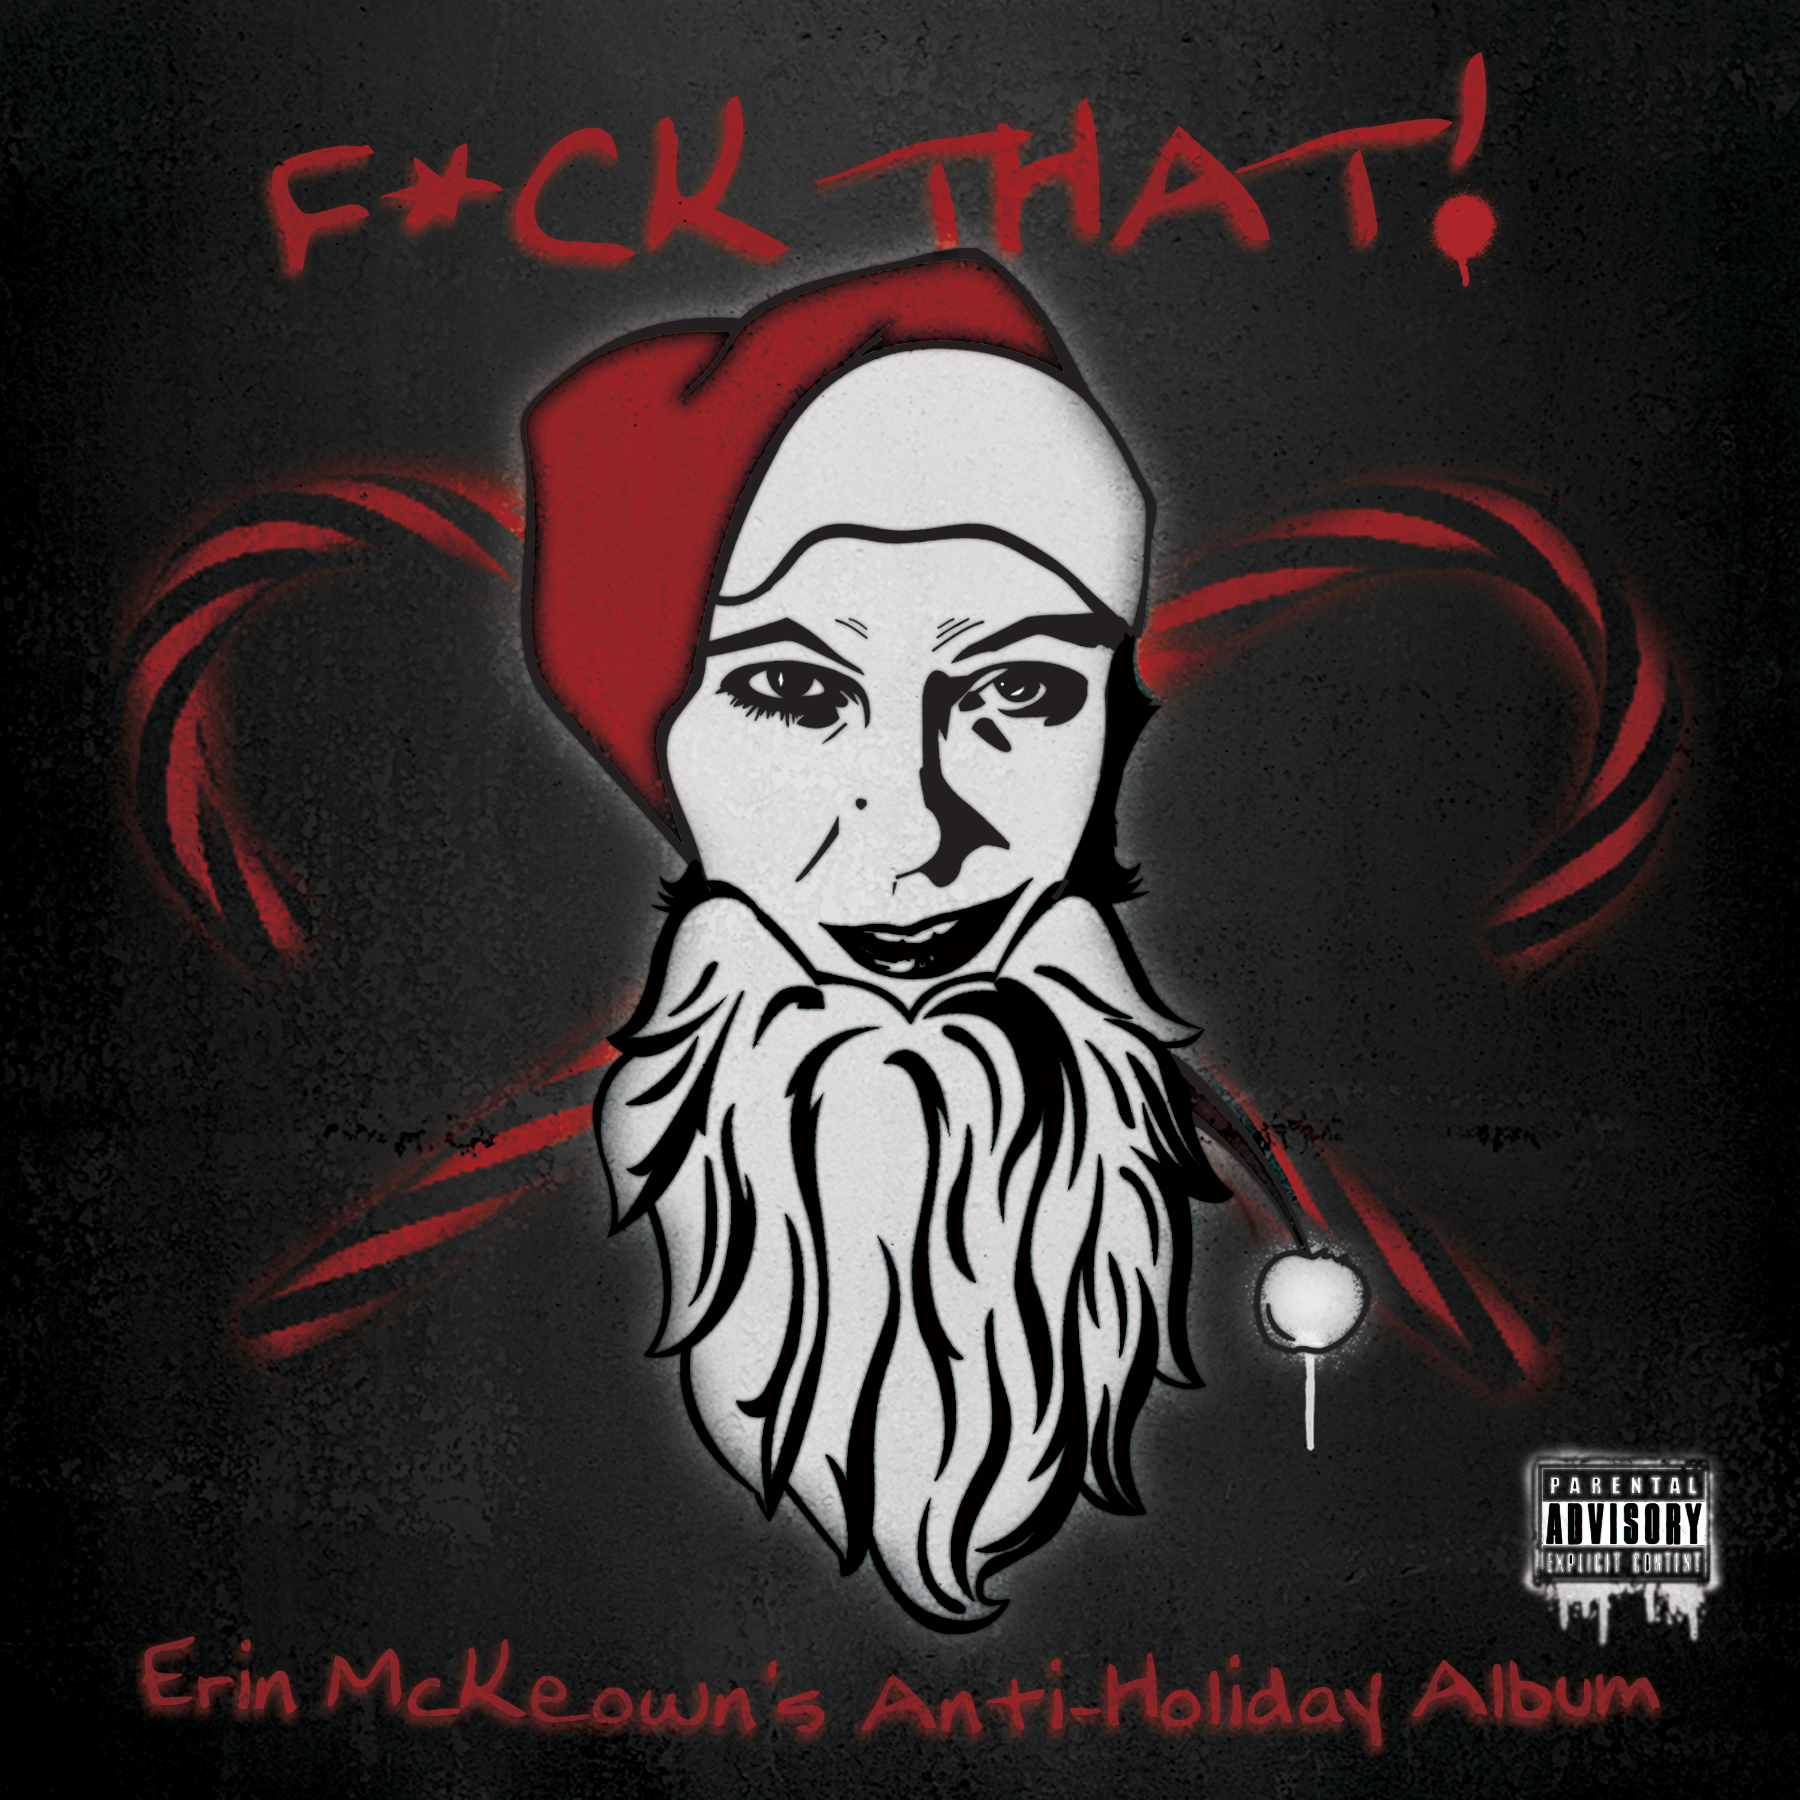 Listen to Erin McKeown's Anti-Holiday Album